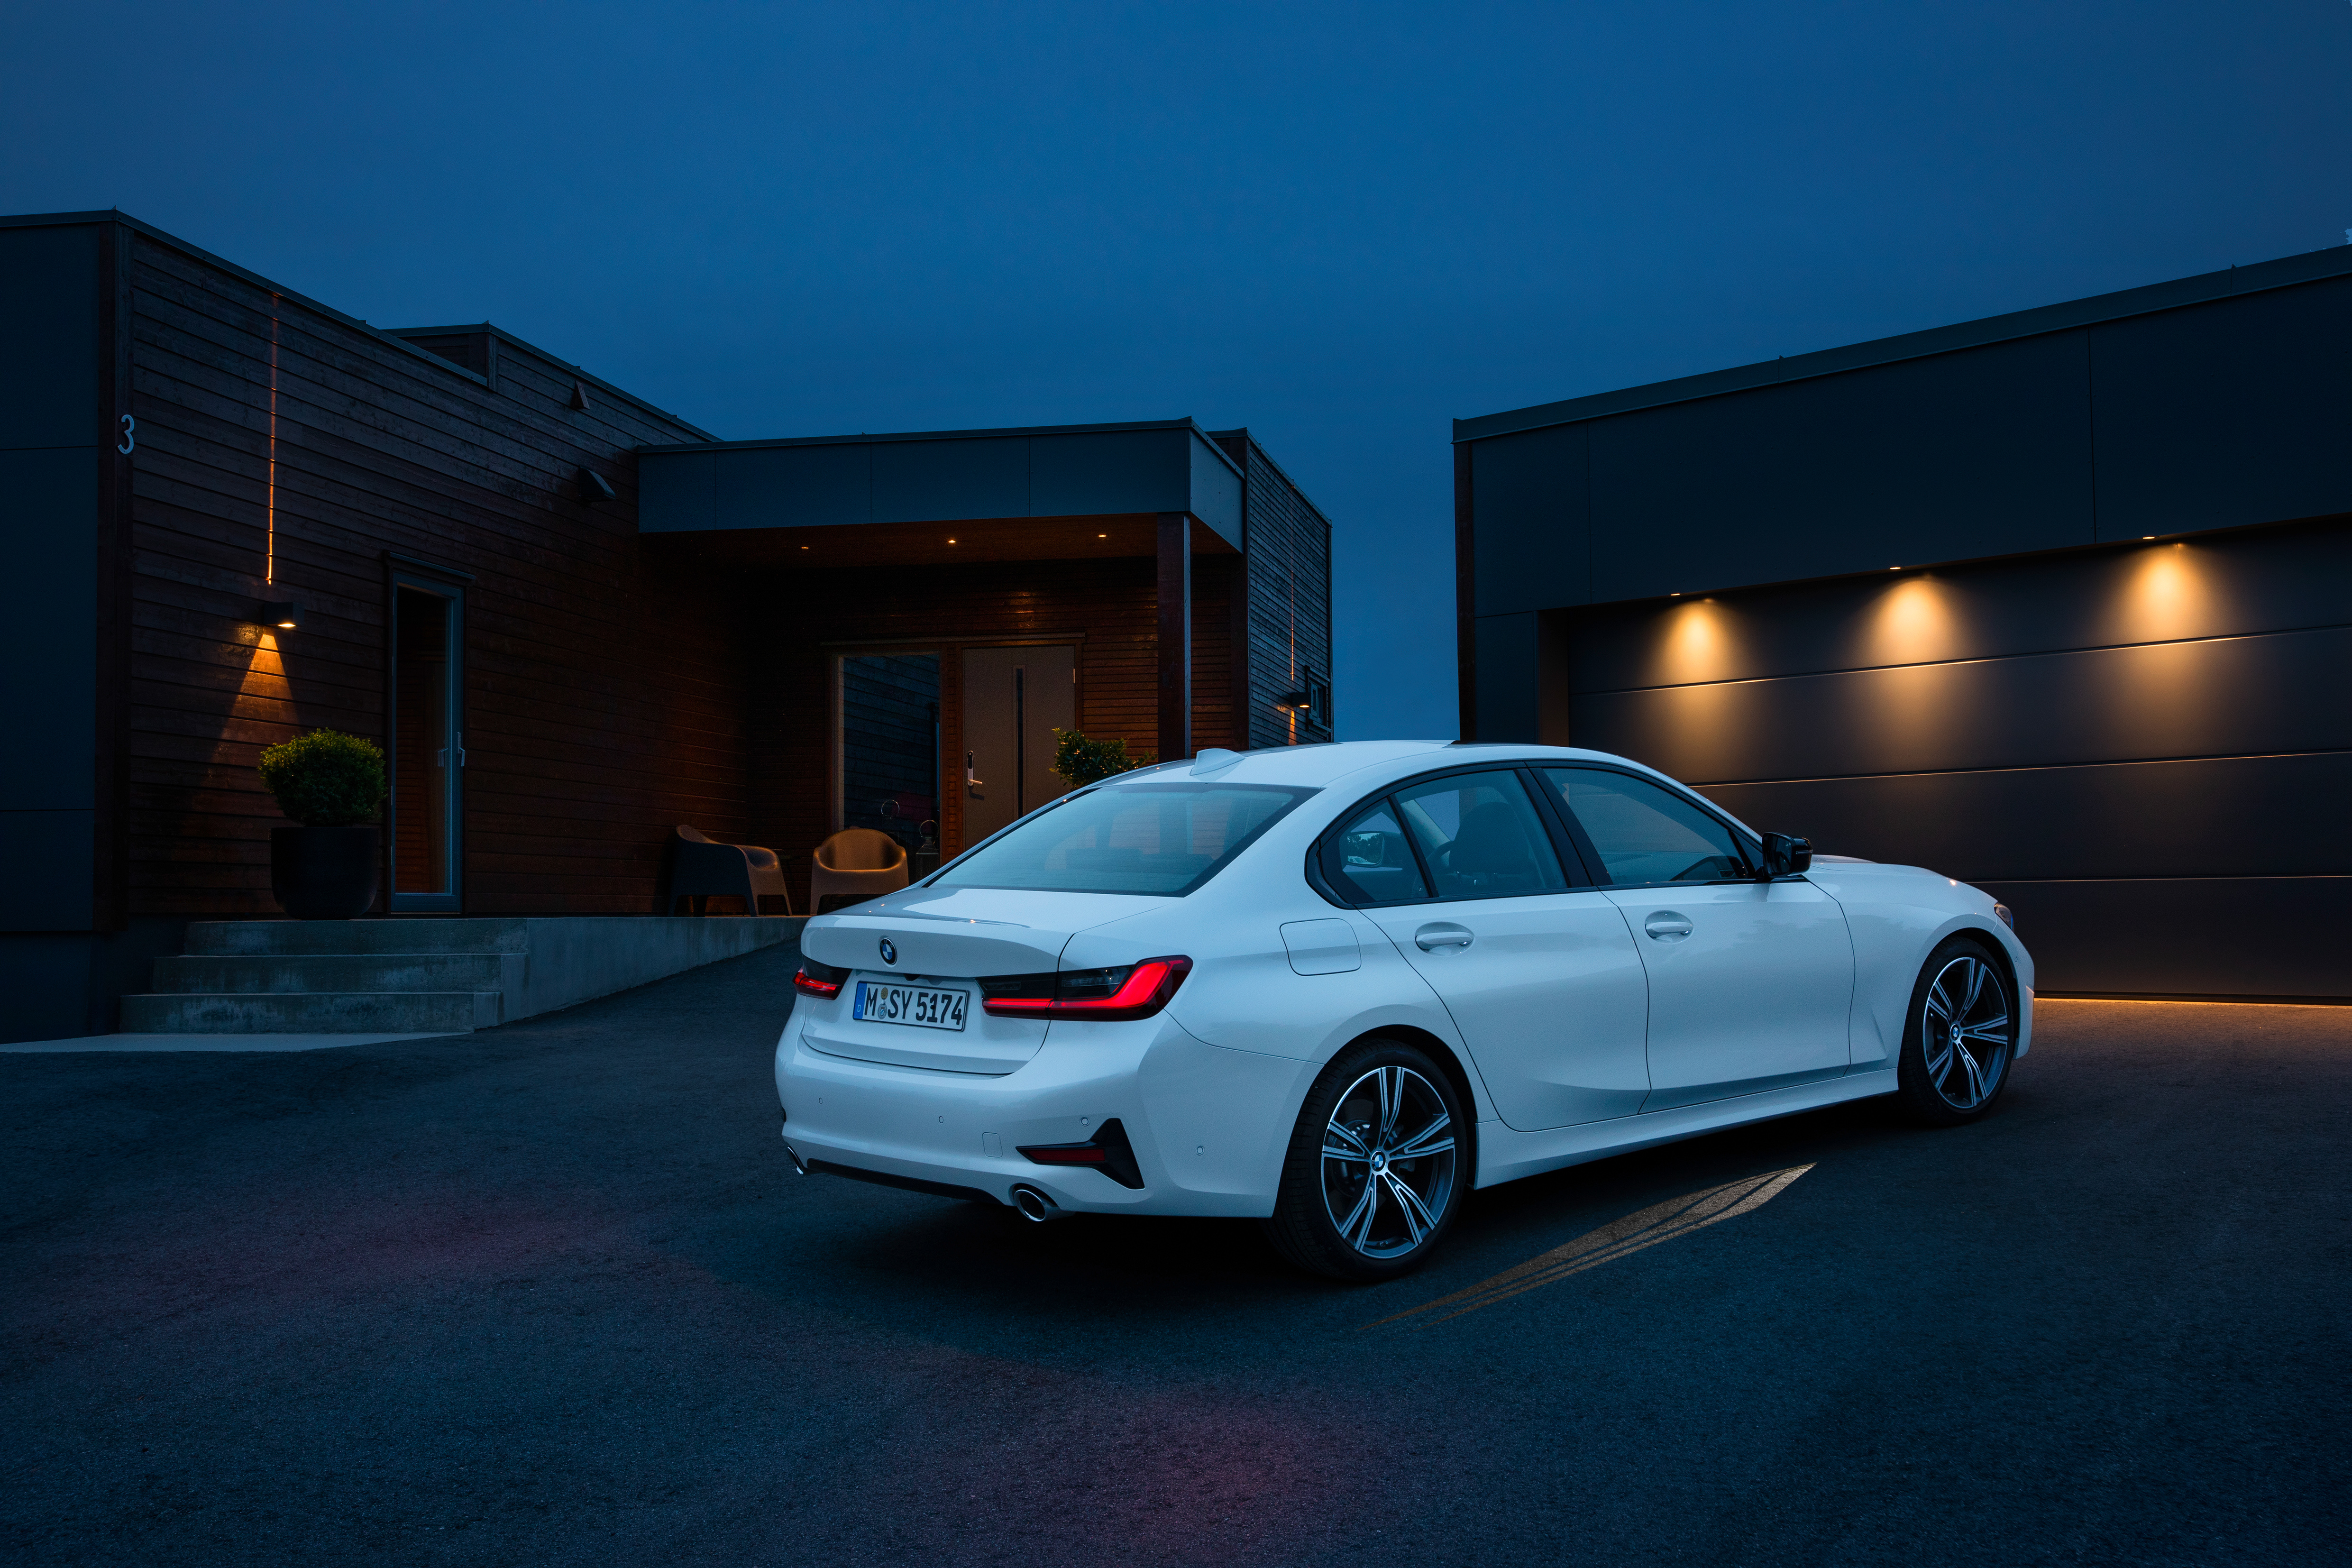 2019 BMW 3 Series has aluminum hood and fenders, slew of possible